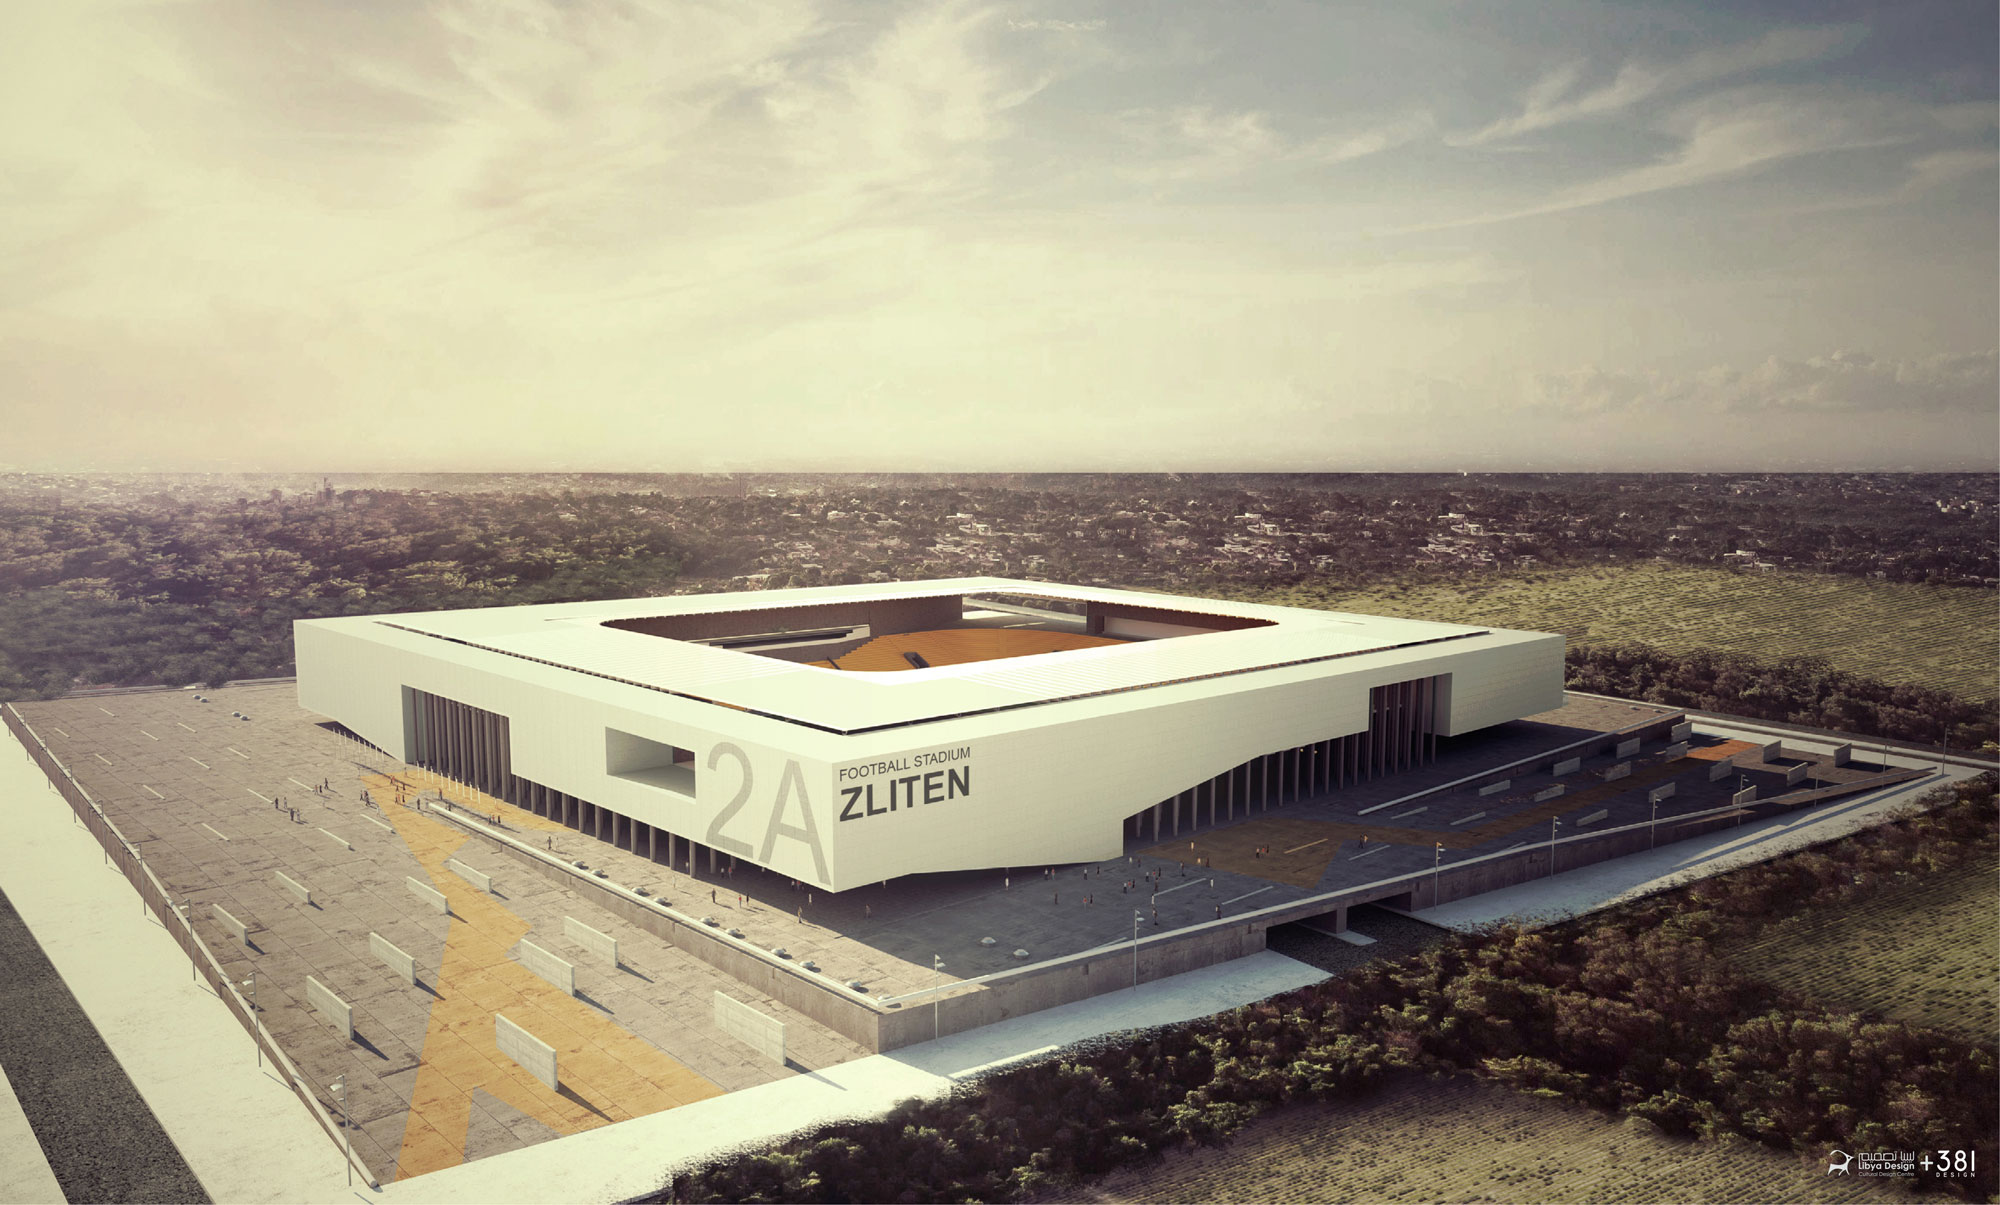 libya design Football Stadium Zliten  01